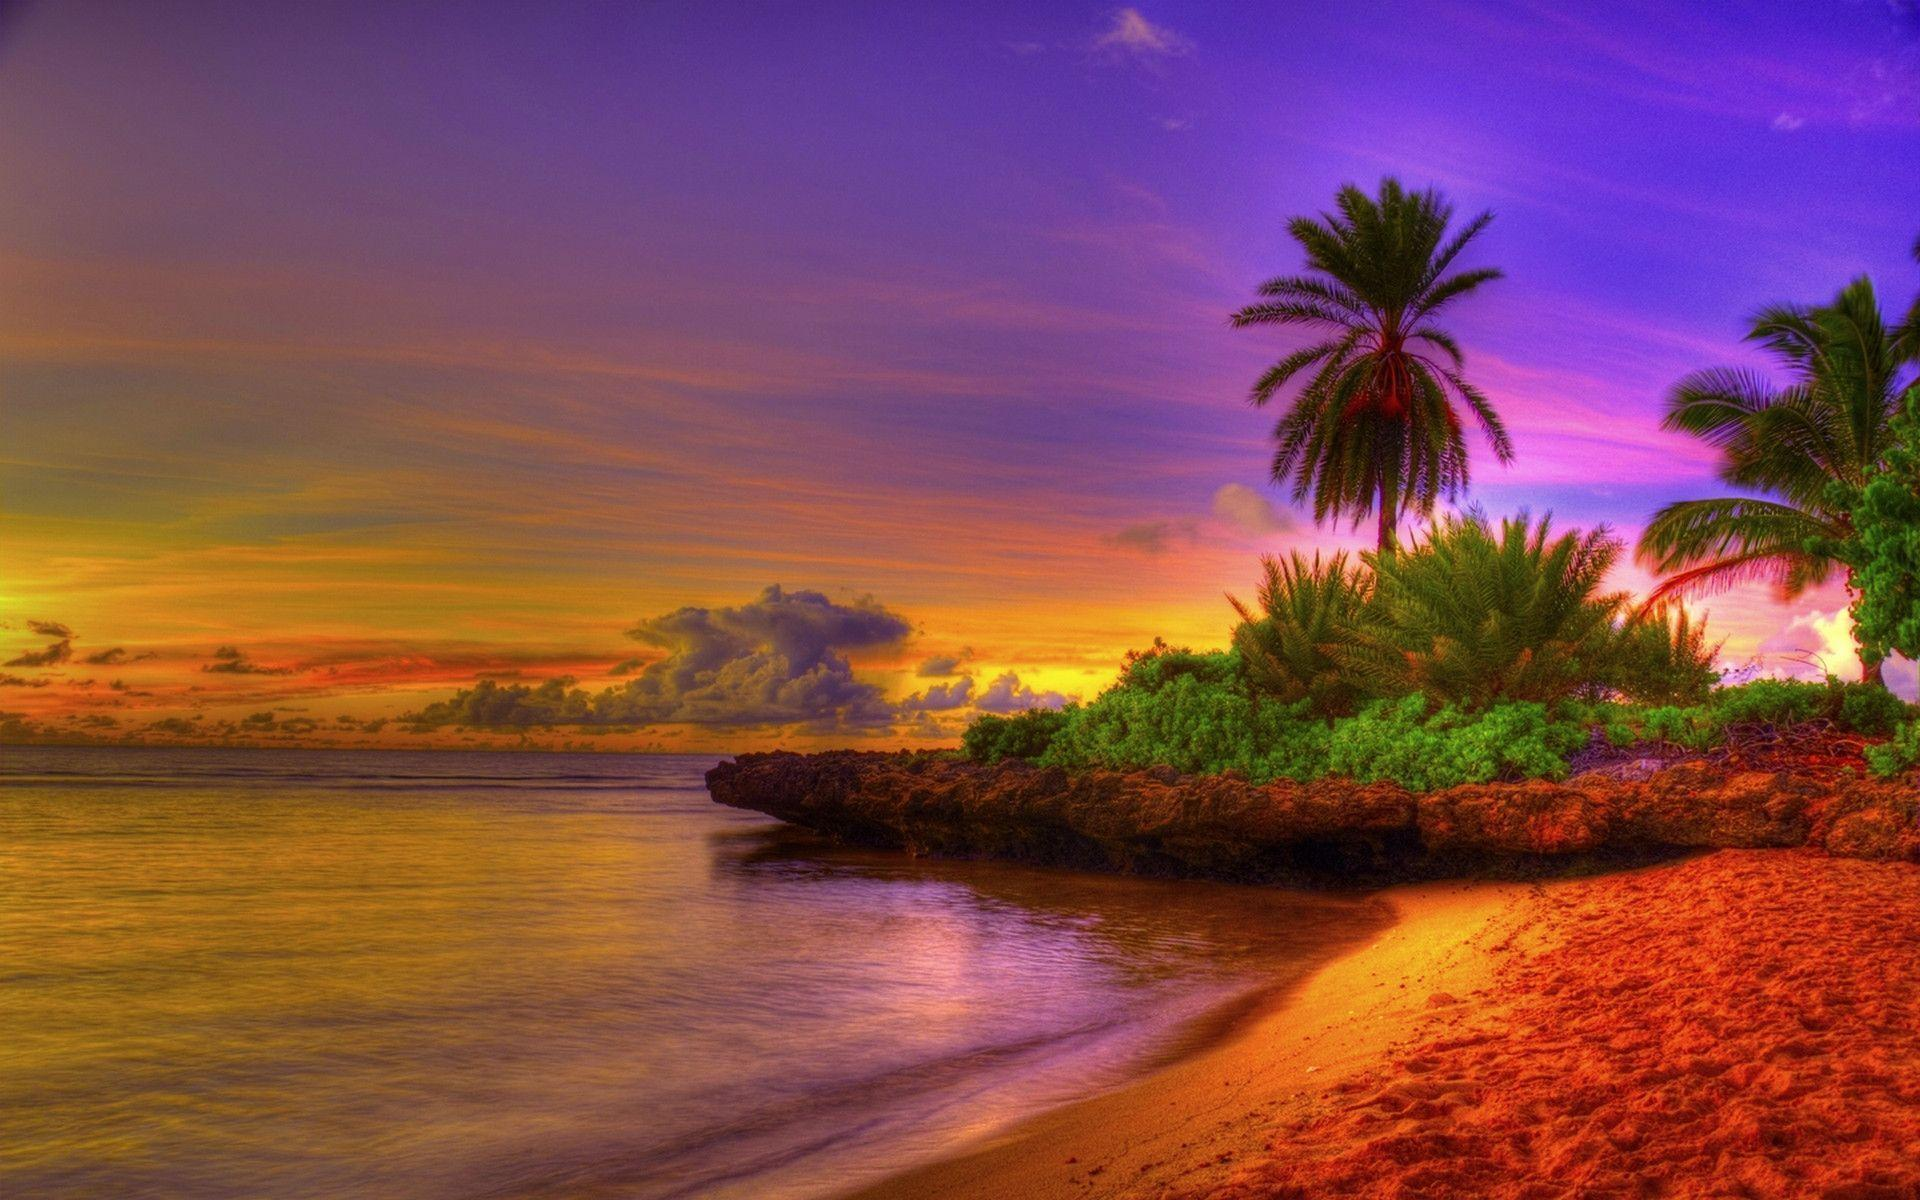 Hd Tropical Island Beach Paradise Wallpapers And Backgrounds: Tropical Beach Pictures Wallpapers